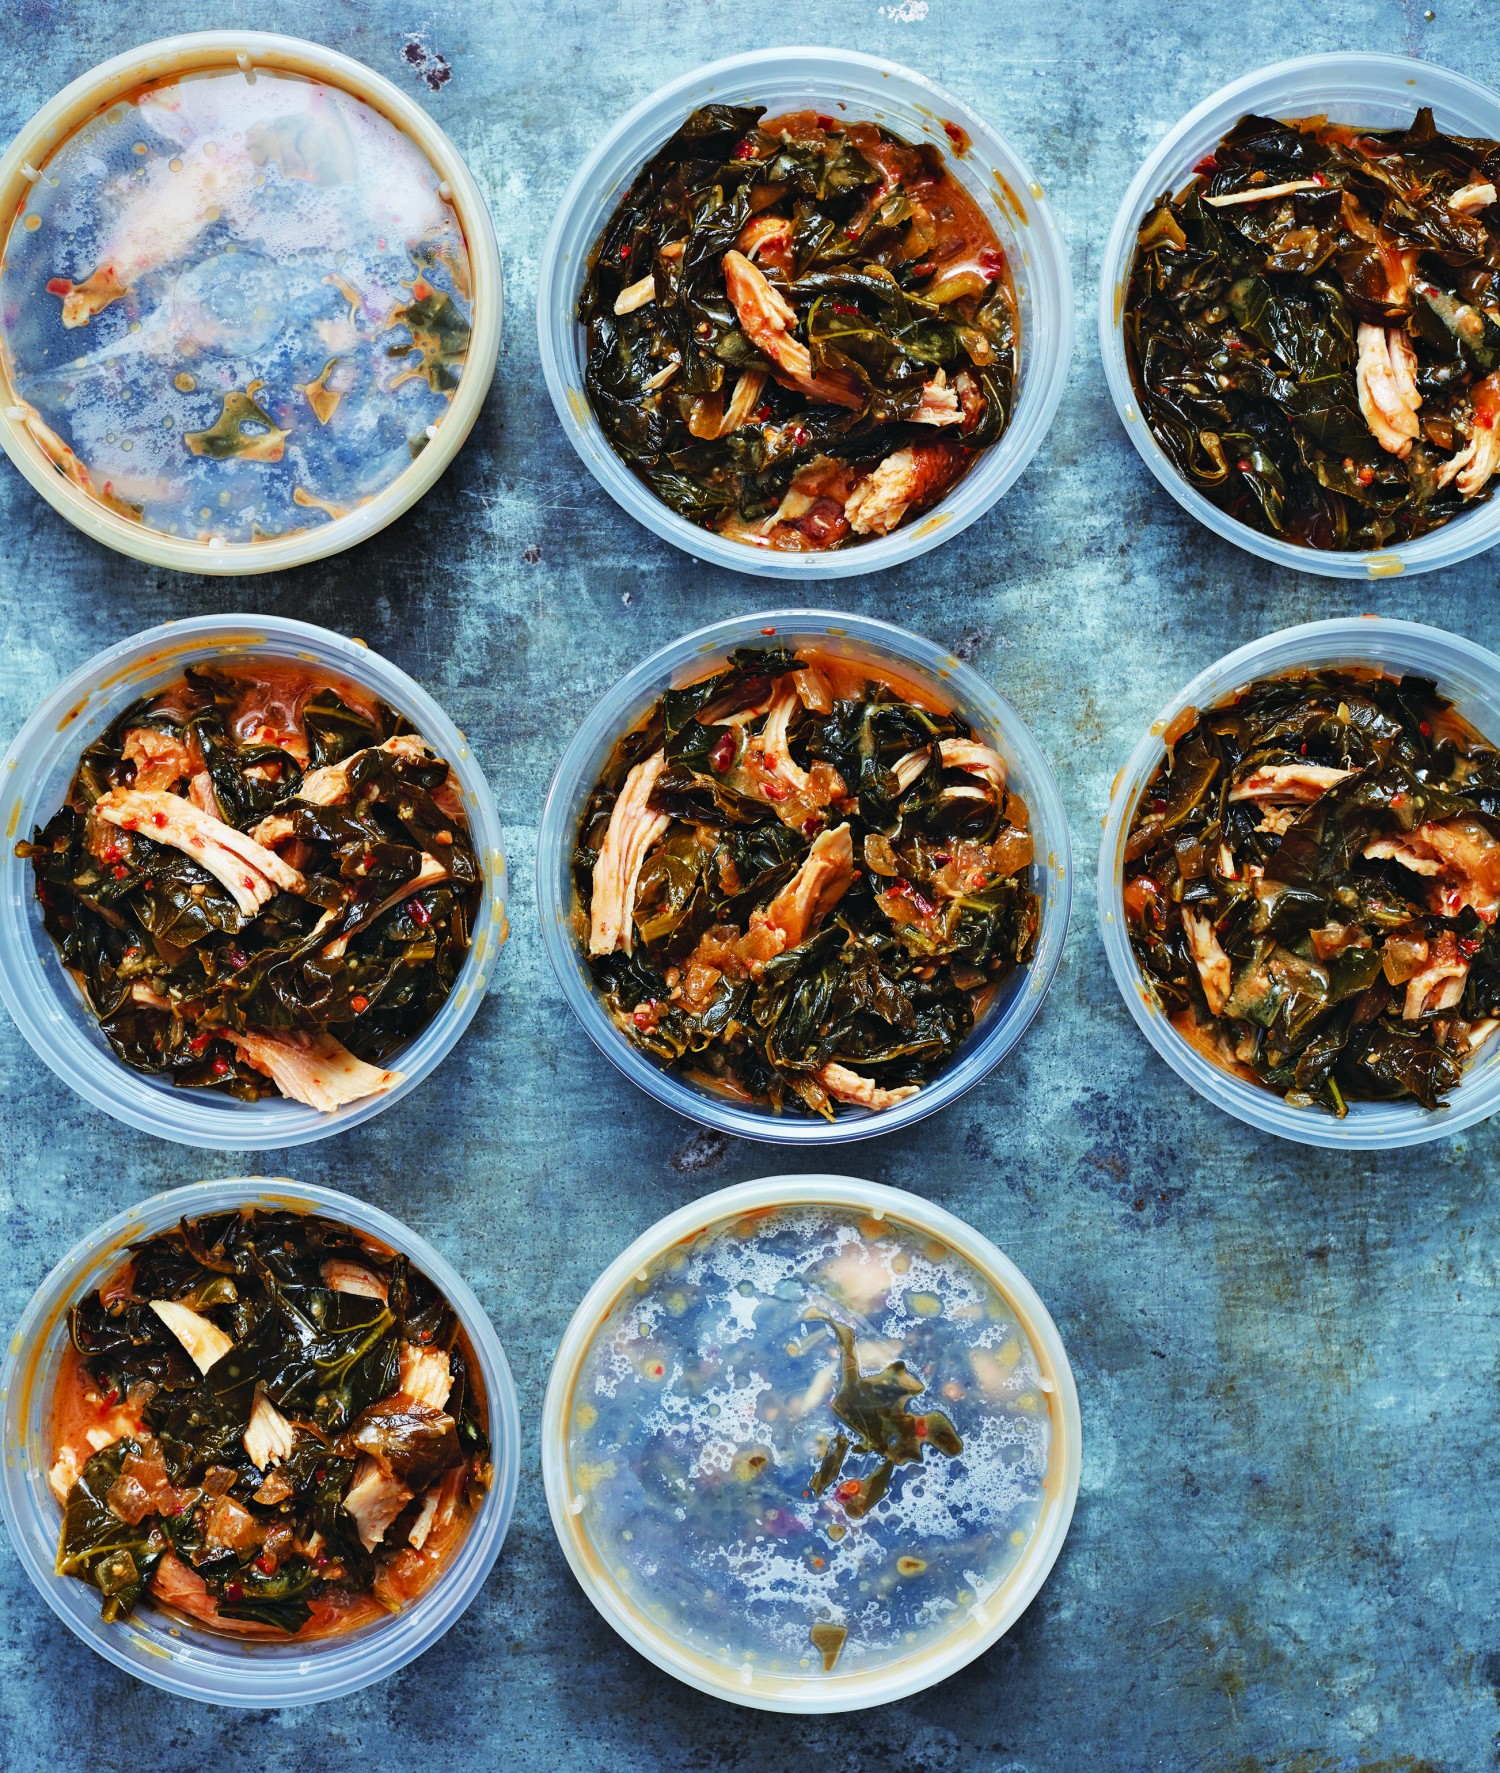 Rice wine vinegar and miso braised collard greens. (Courtesy of Time Inc.)